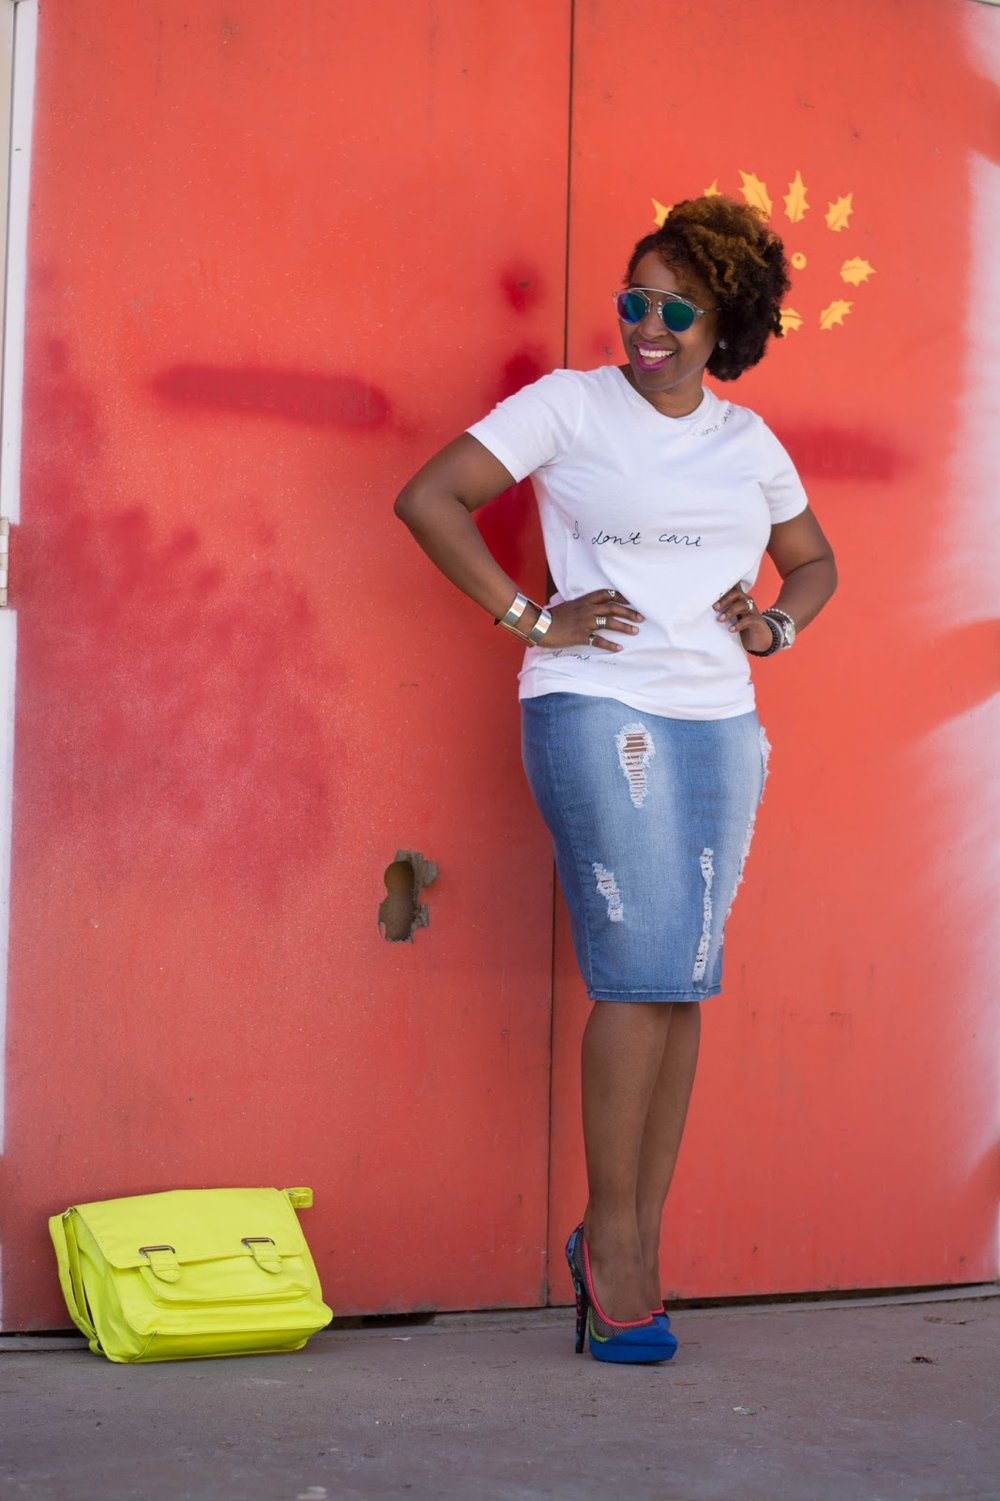 Atlanta stylist, Atlanta blogger, Fashion blogger, Atlanta style, Street style, Black bloggers, Brown bloggers, Atlanta fashion, Distressed denim, white T, mirrored glassed, natural hair, 4c hair style, thrifted fashion, mixed print shoes, yellow handbag, black girls killing it